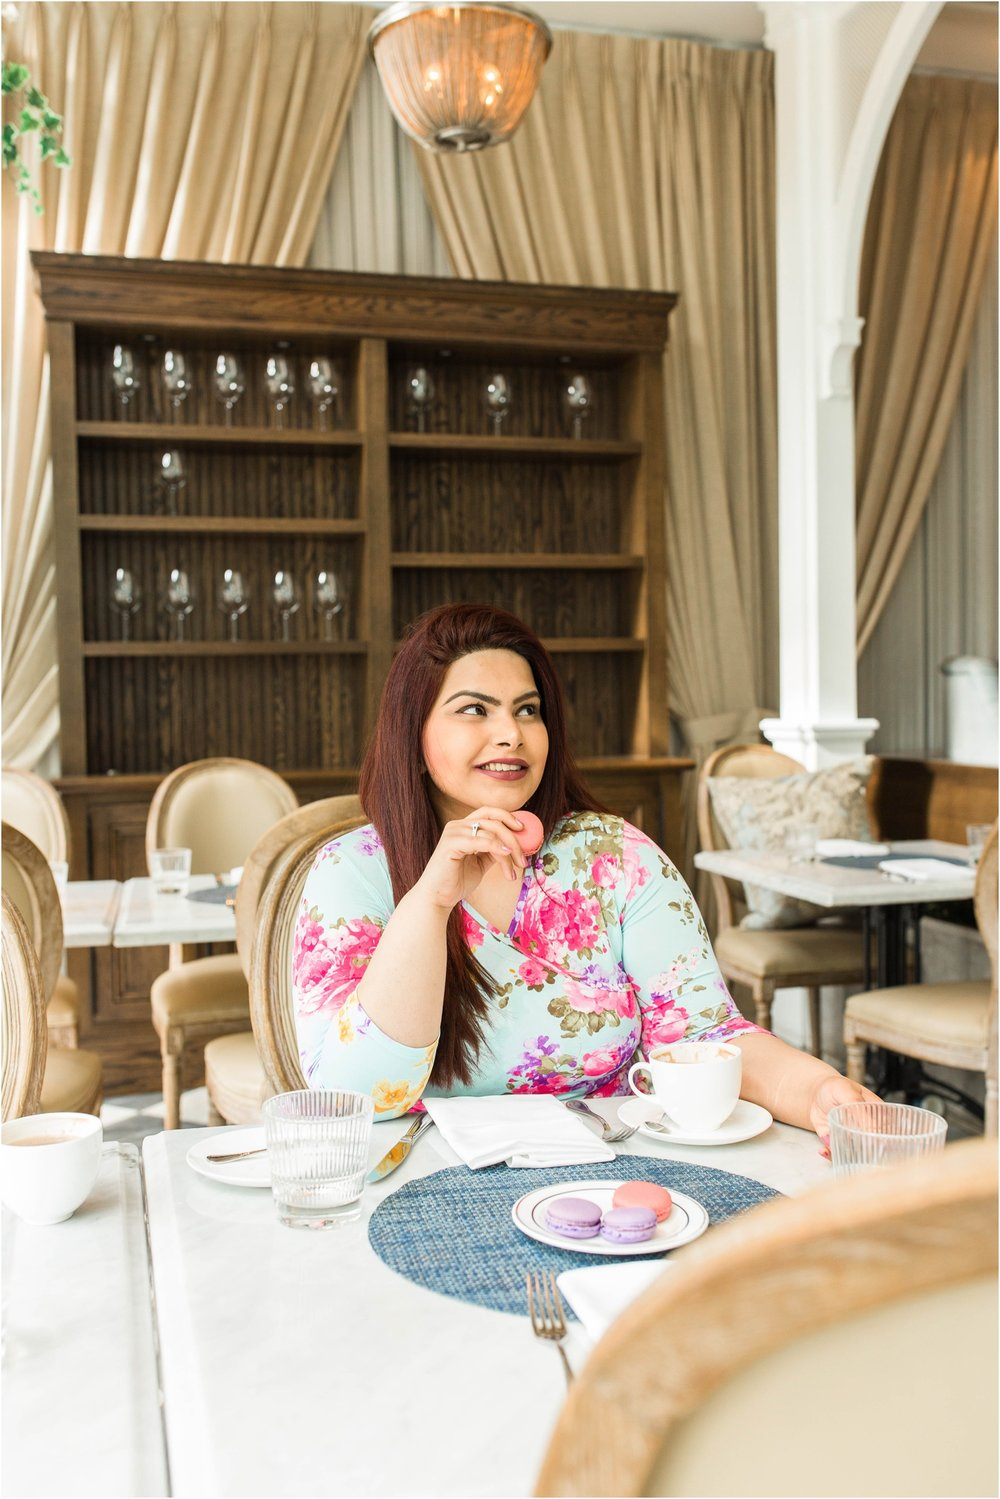 Colette-Grand-Cafe-Thompson-Hotel-Osgoode-Hall-Engagement-Session-Toronto-Mississauga-Brampton-Scarborough-GTA-Pakistani-Indian-Wedding-Engagement-Photographer-Photography_0021.jpg